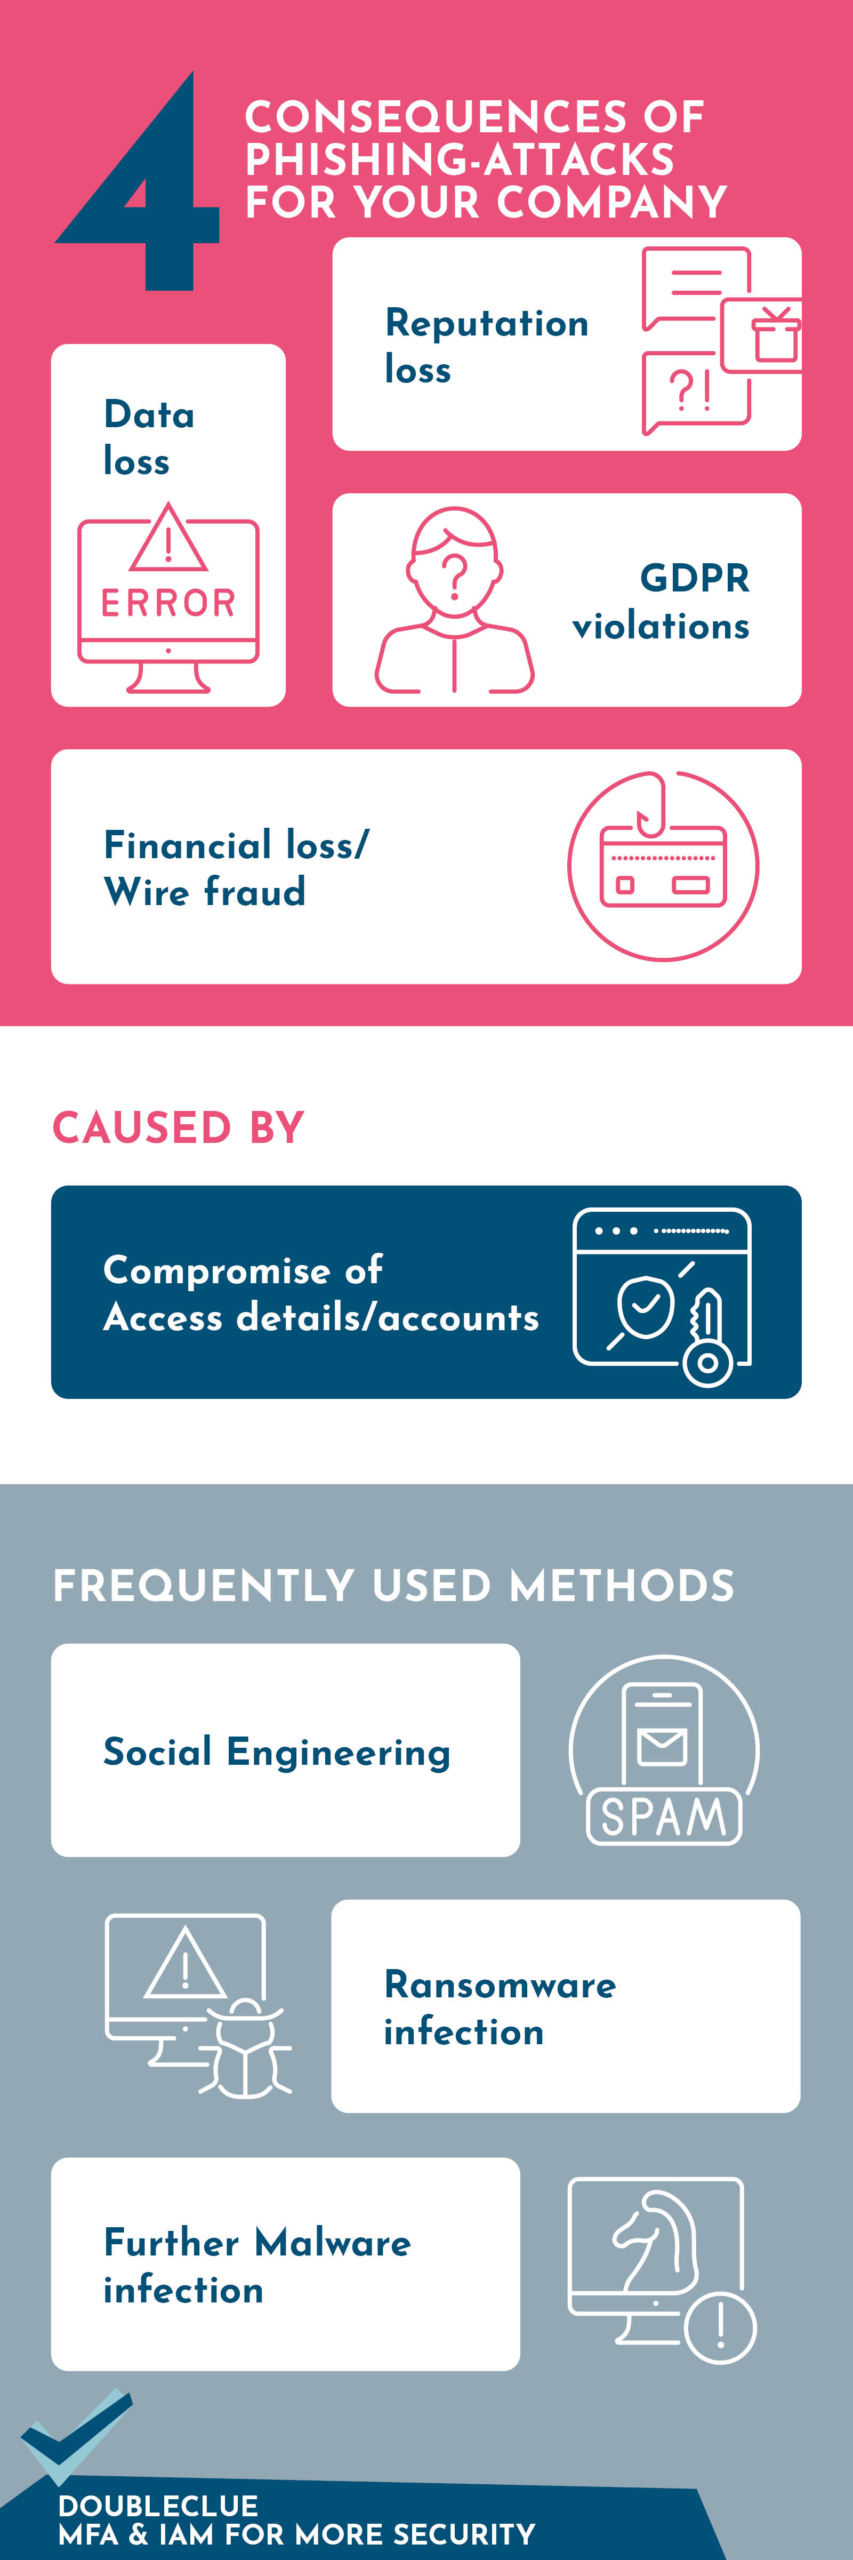 Infographic Phishing